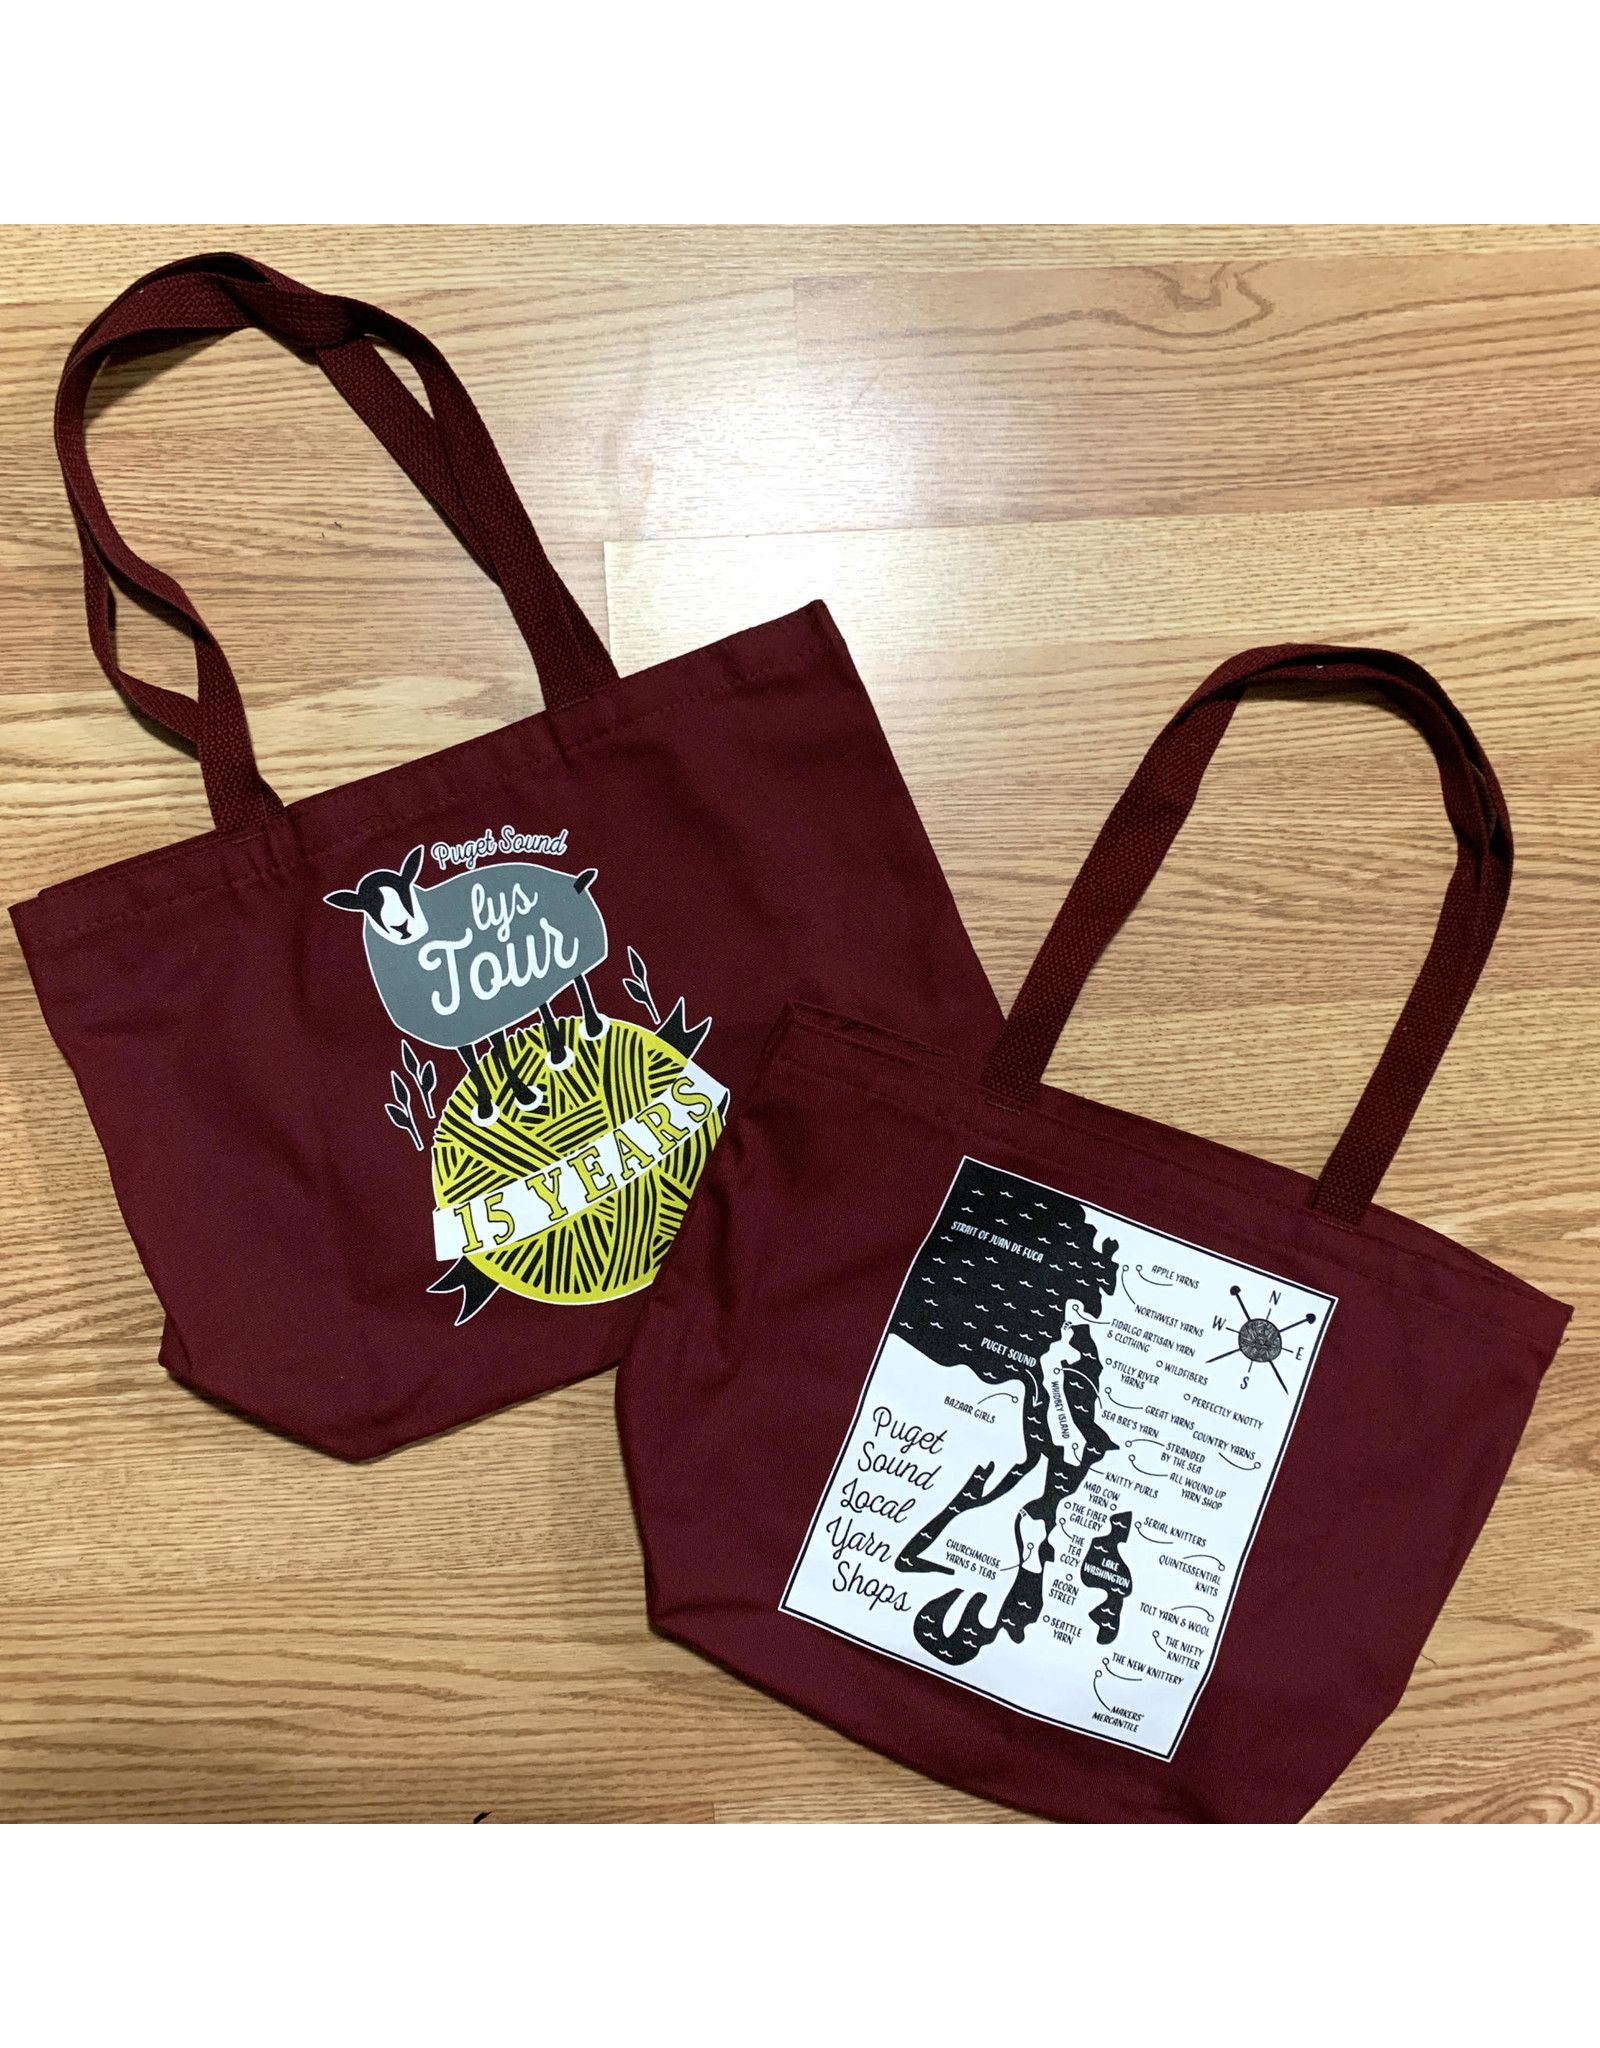 Puget Sound Yarn Tour LYS 15th Anniversary Tote (2020)